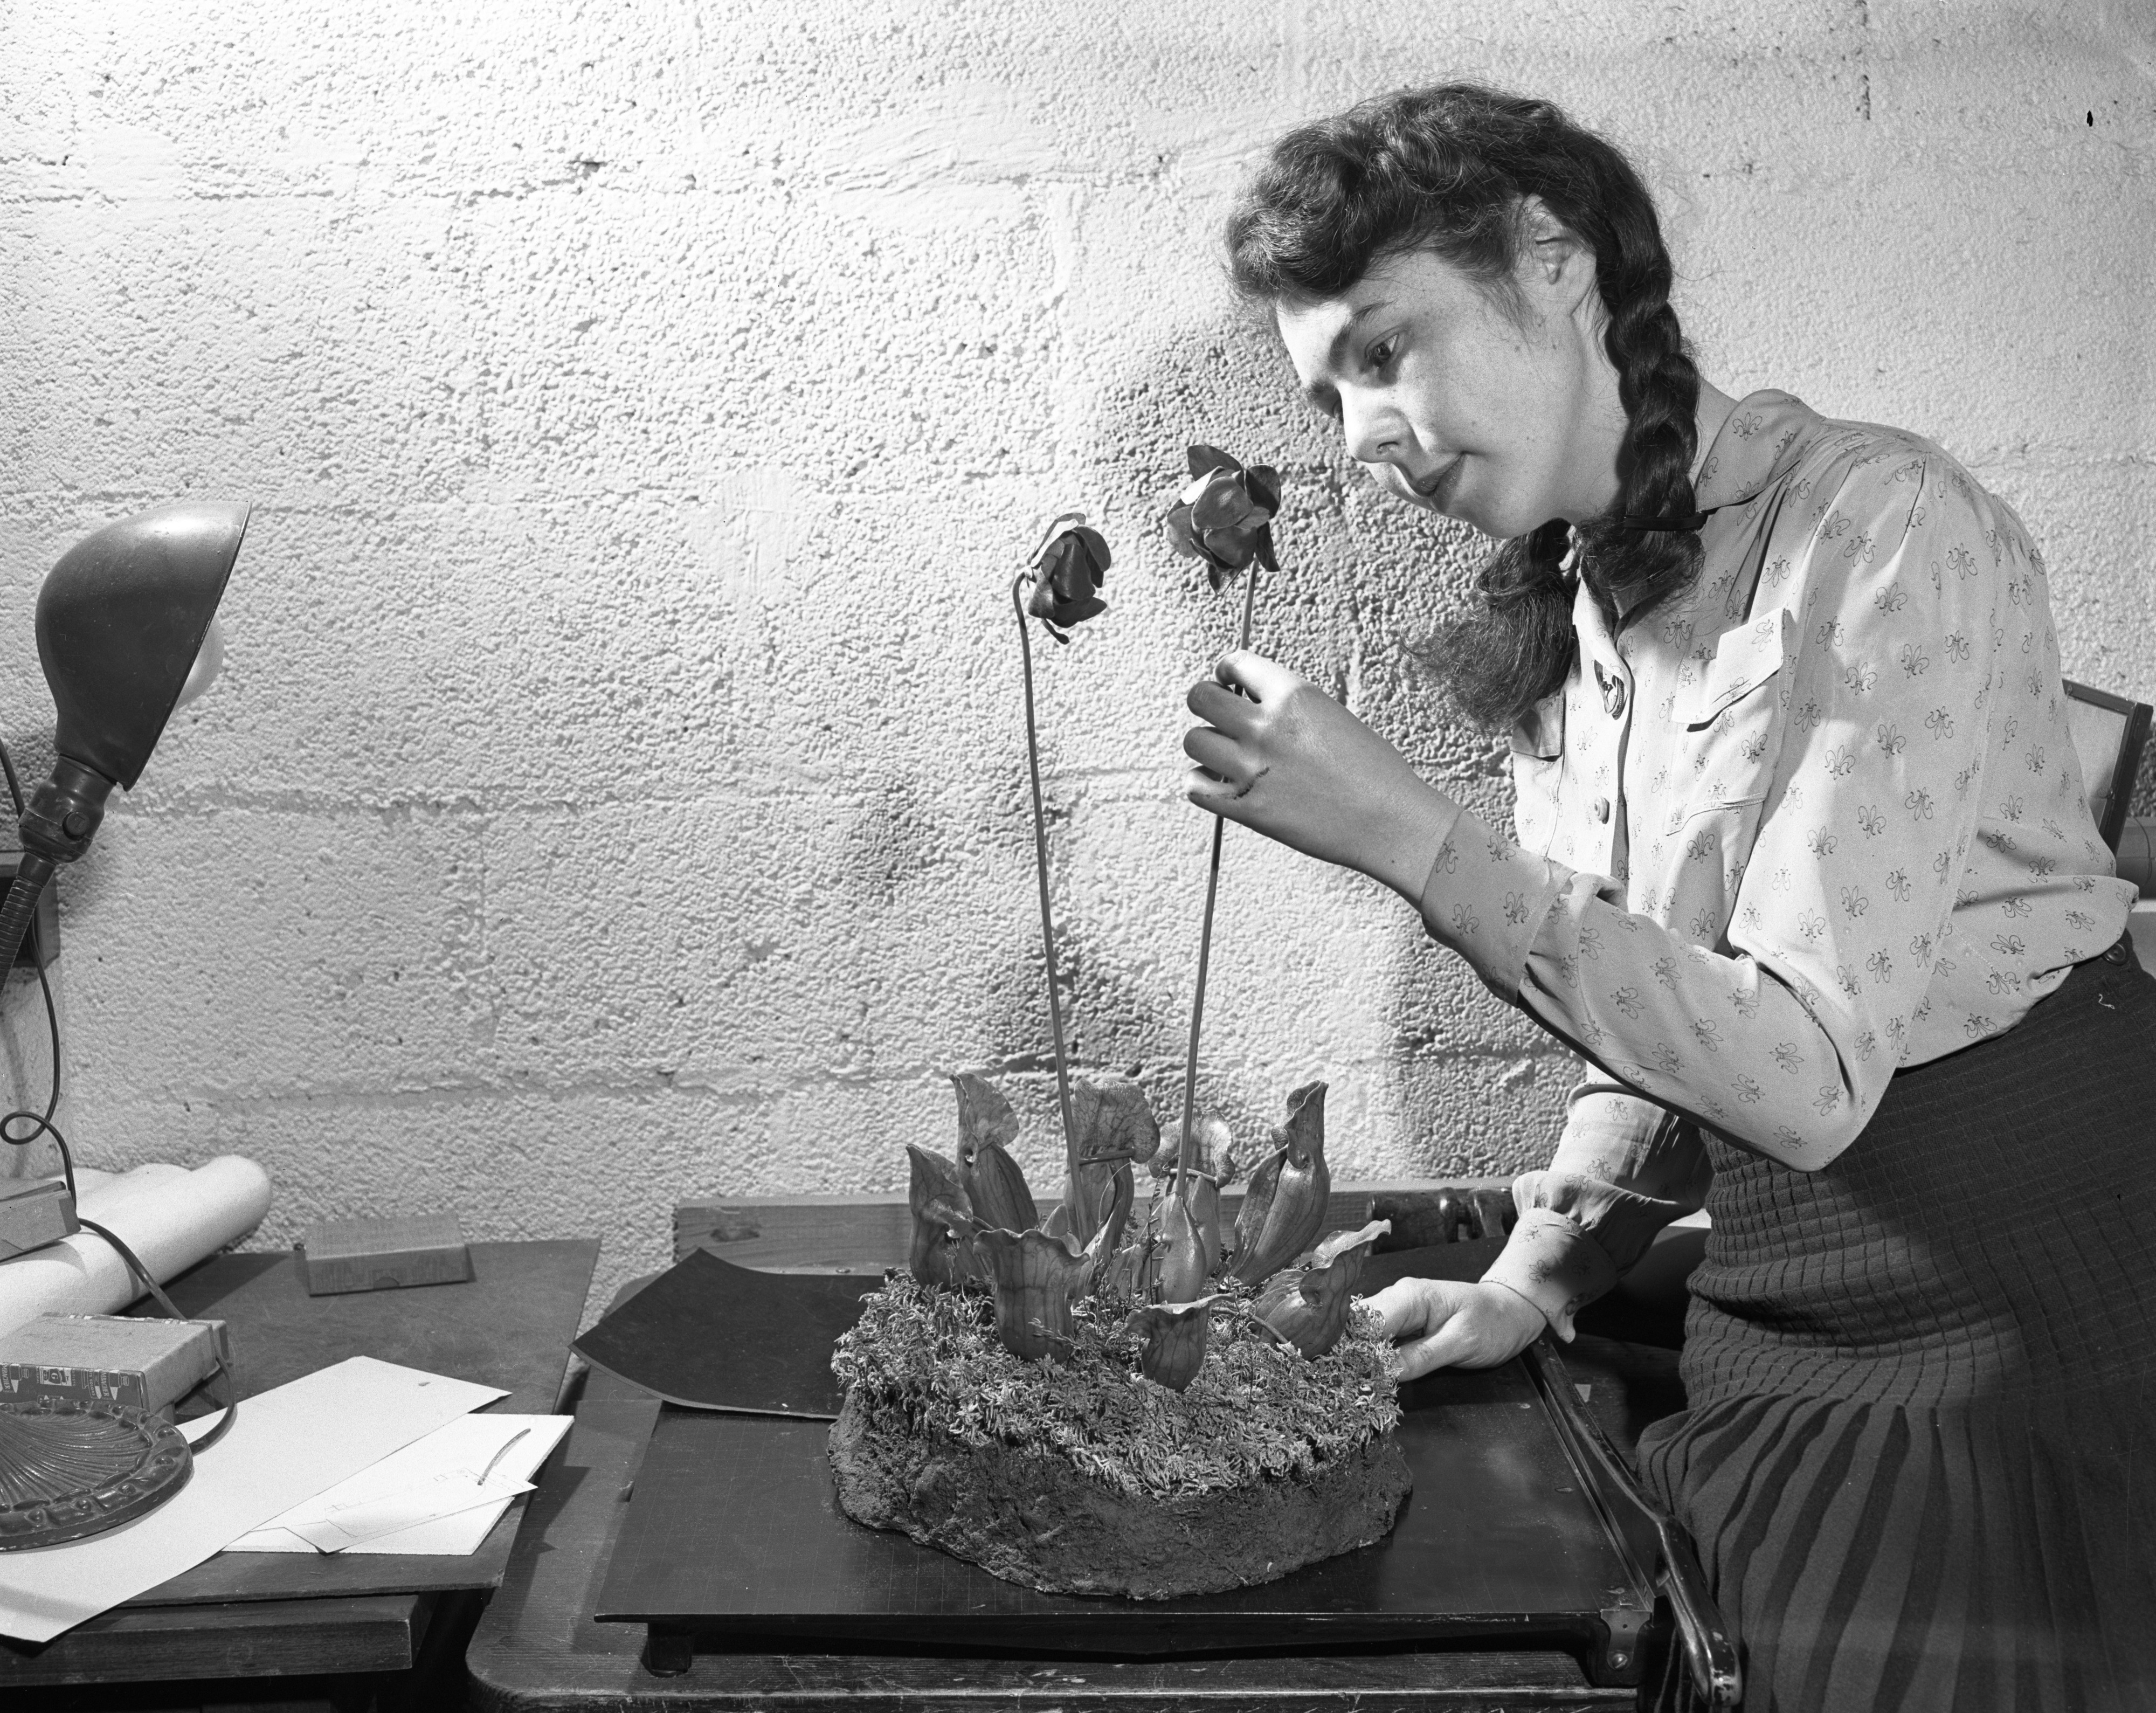 Olga Kazarinoff & Wax Flowers at the University of Michigan Museum, June 1948 image